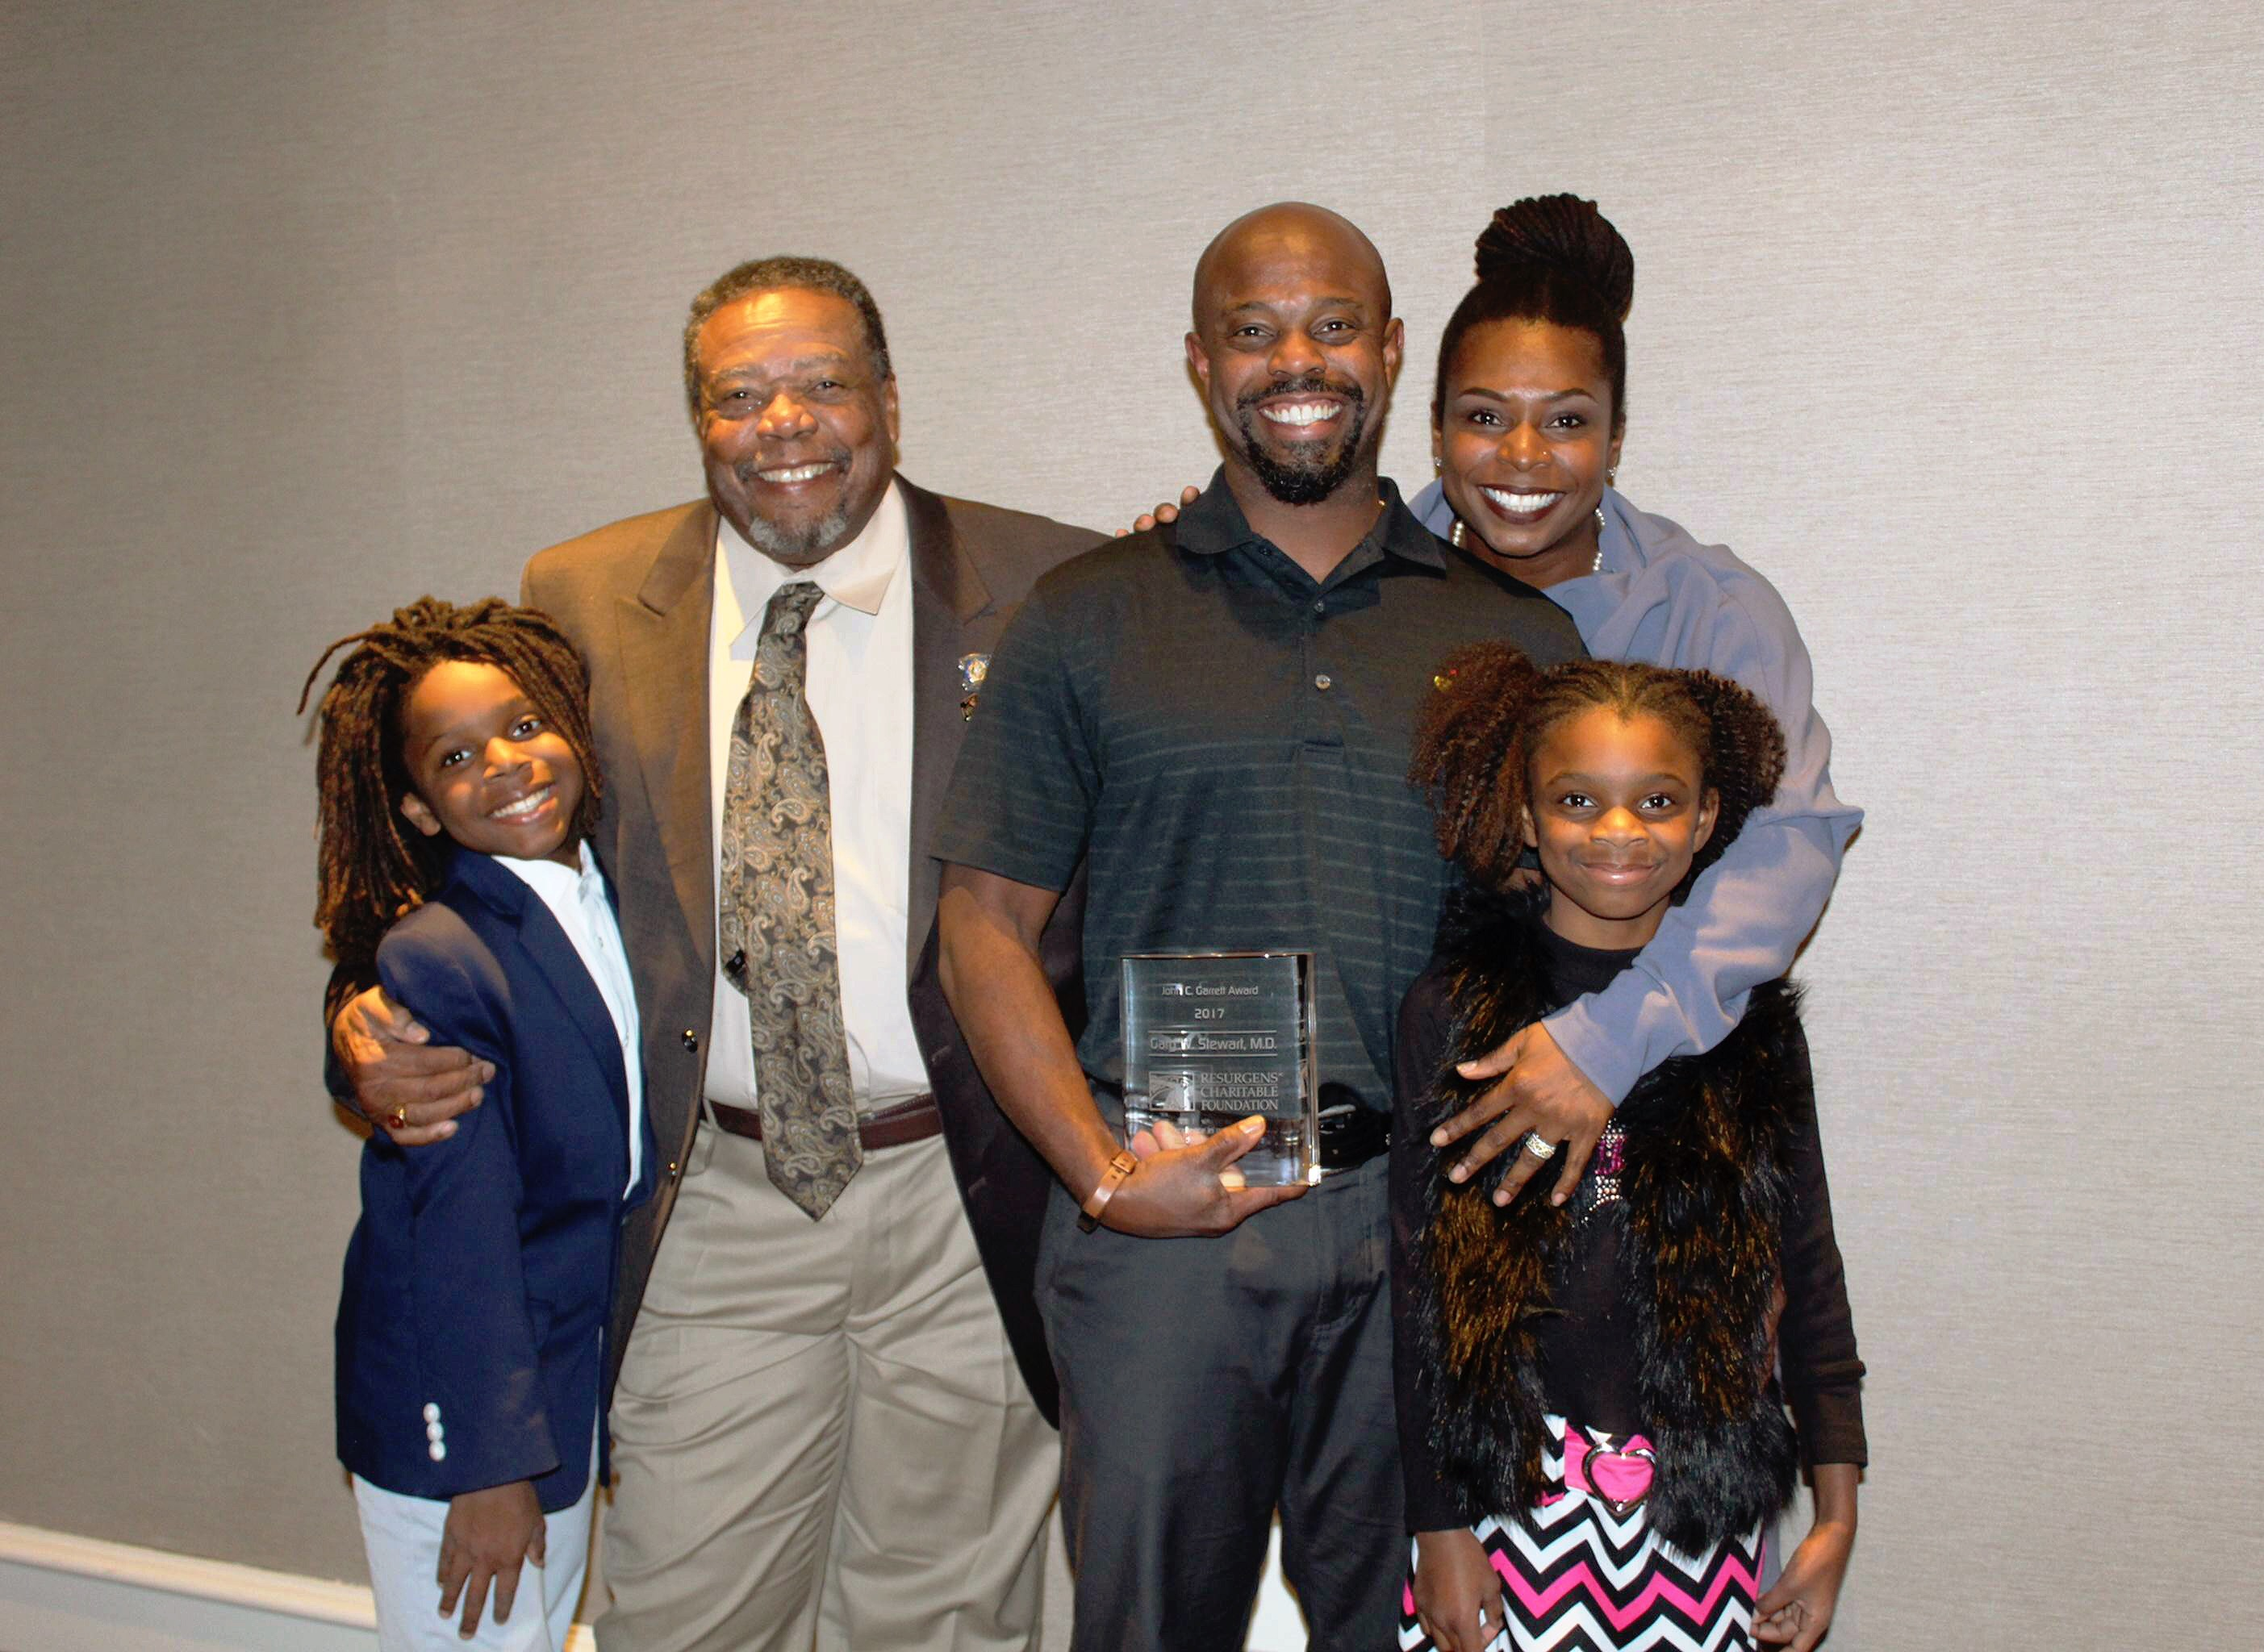 Family posing for picture with man holding award